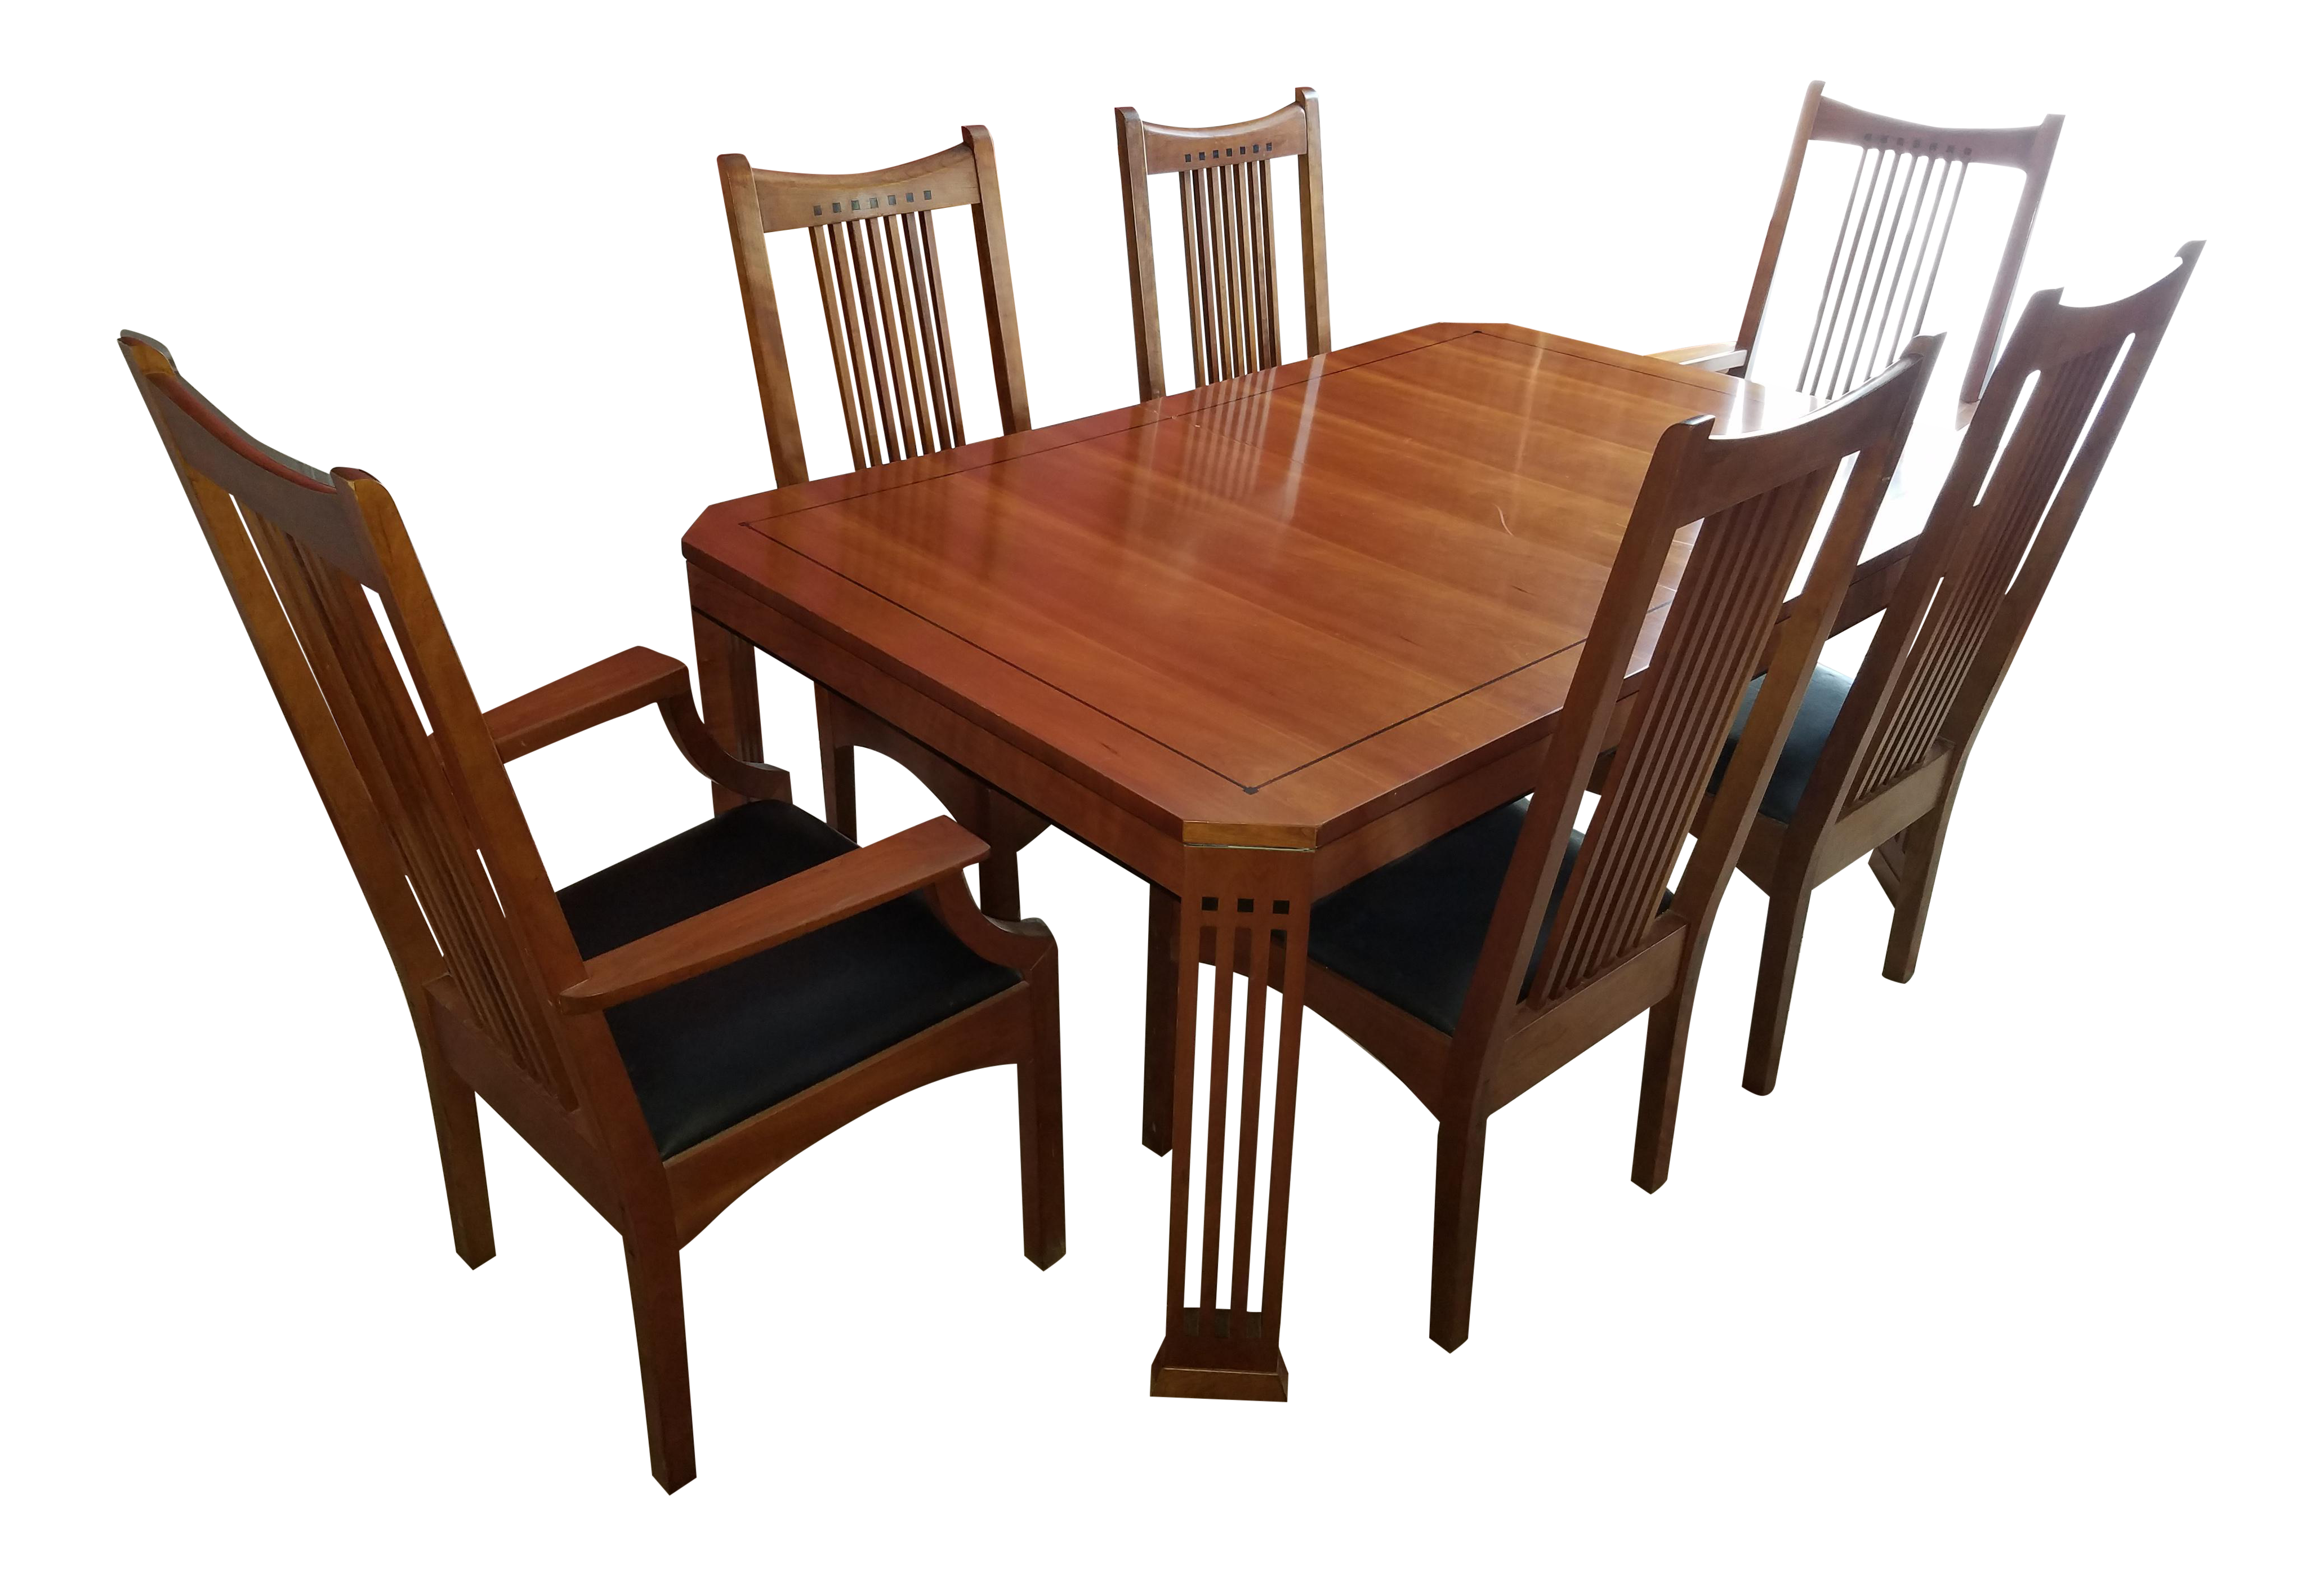 Stickley dining room furniture for sale - Stickley 21st Century Collection Dining Table Set With 6 Chairs Chairish